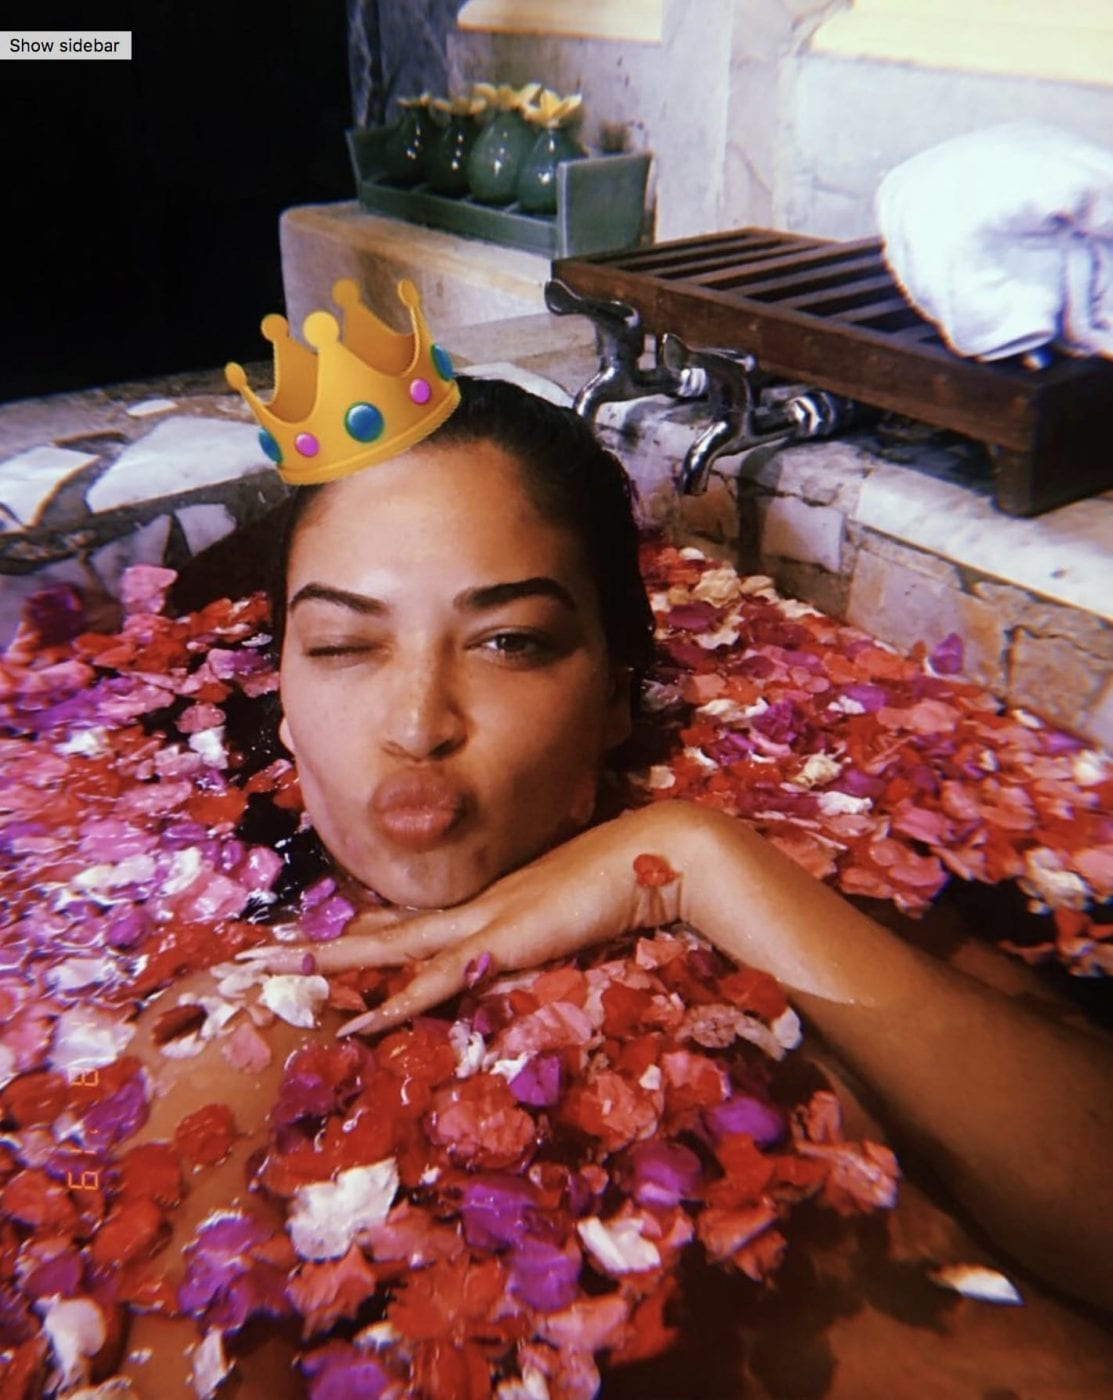 Shanina Shaik was pictured pouting among the petals. Credit: Instagram